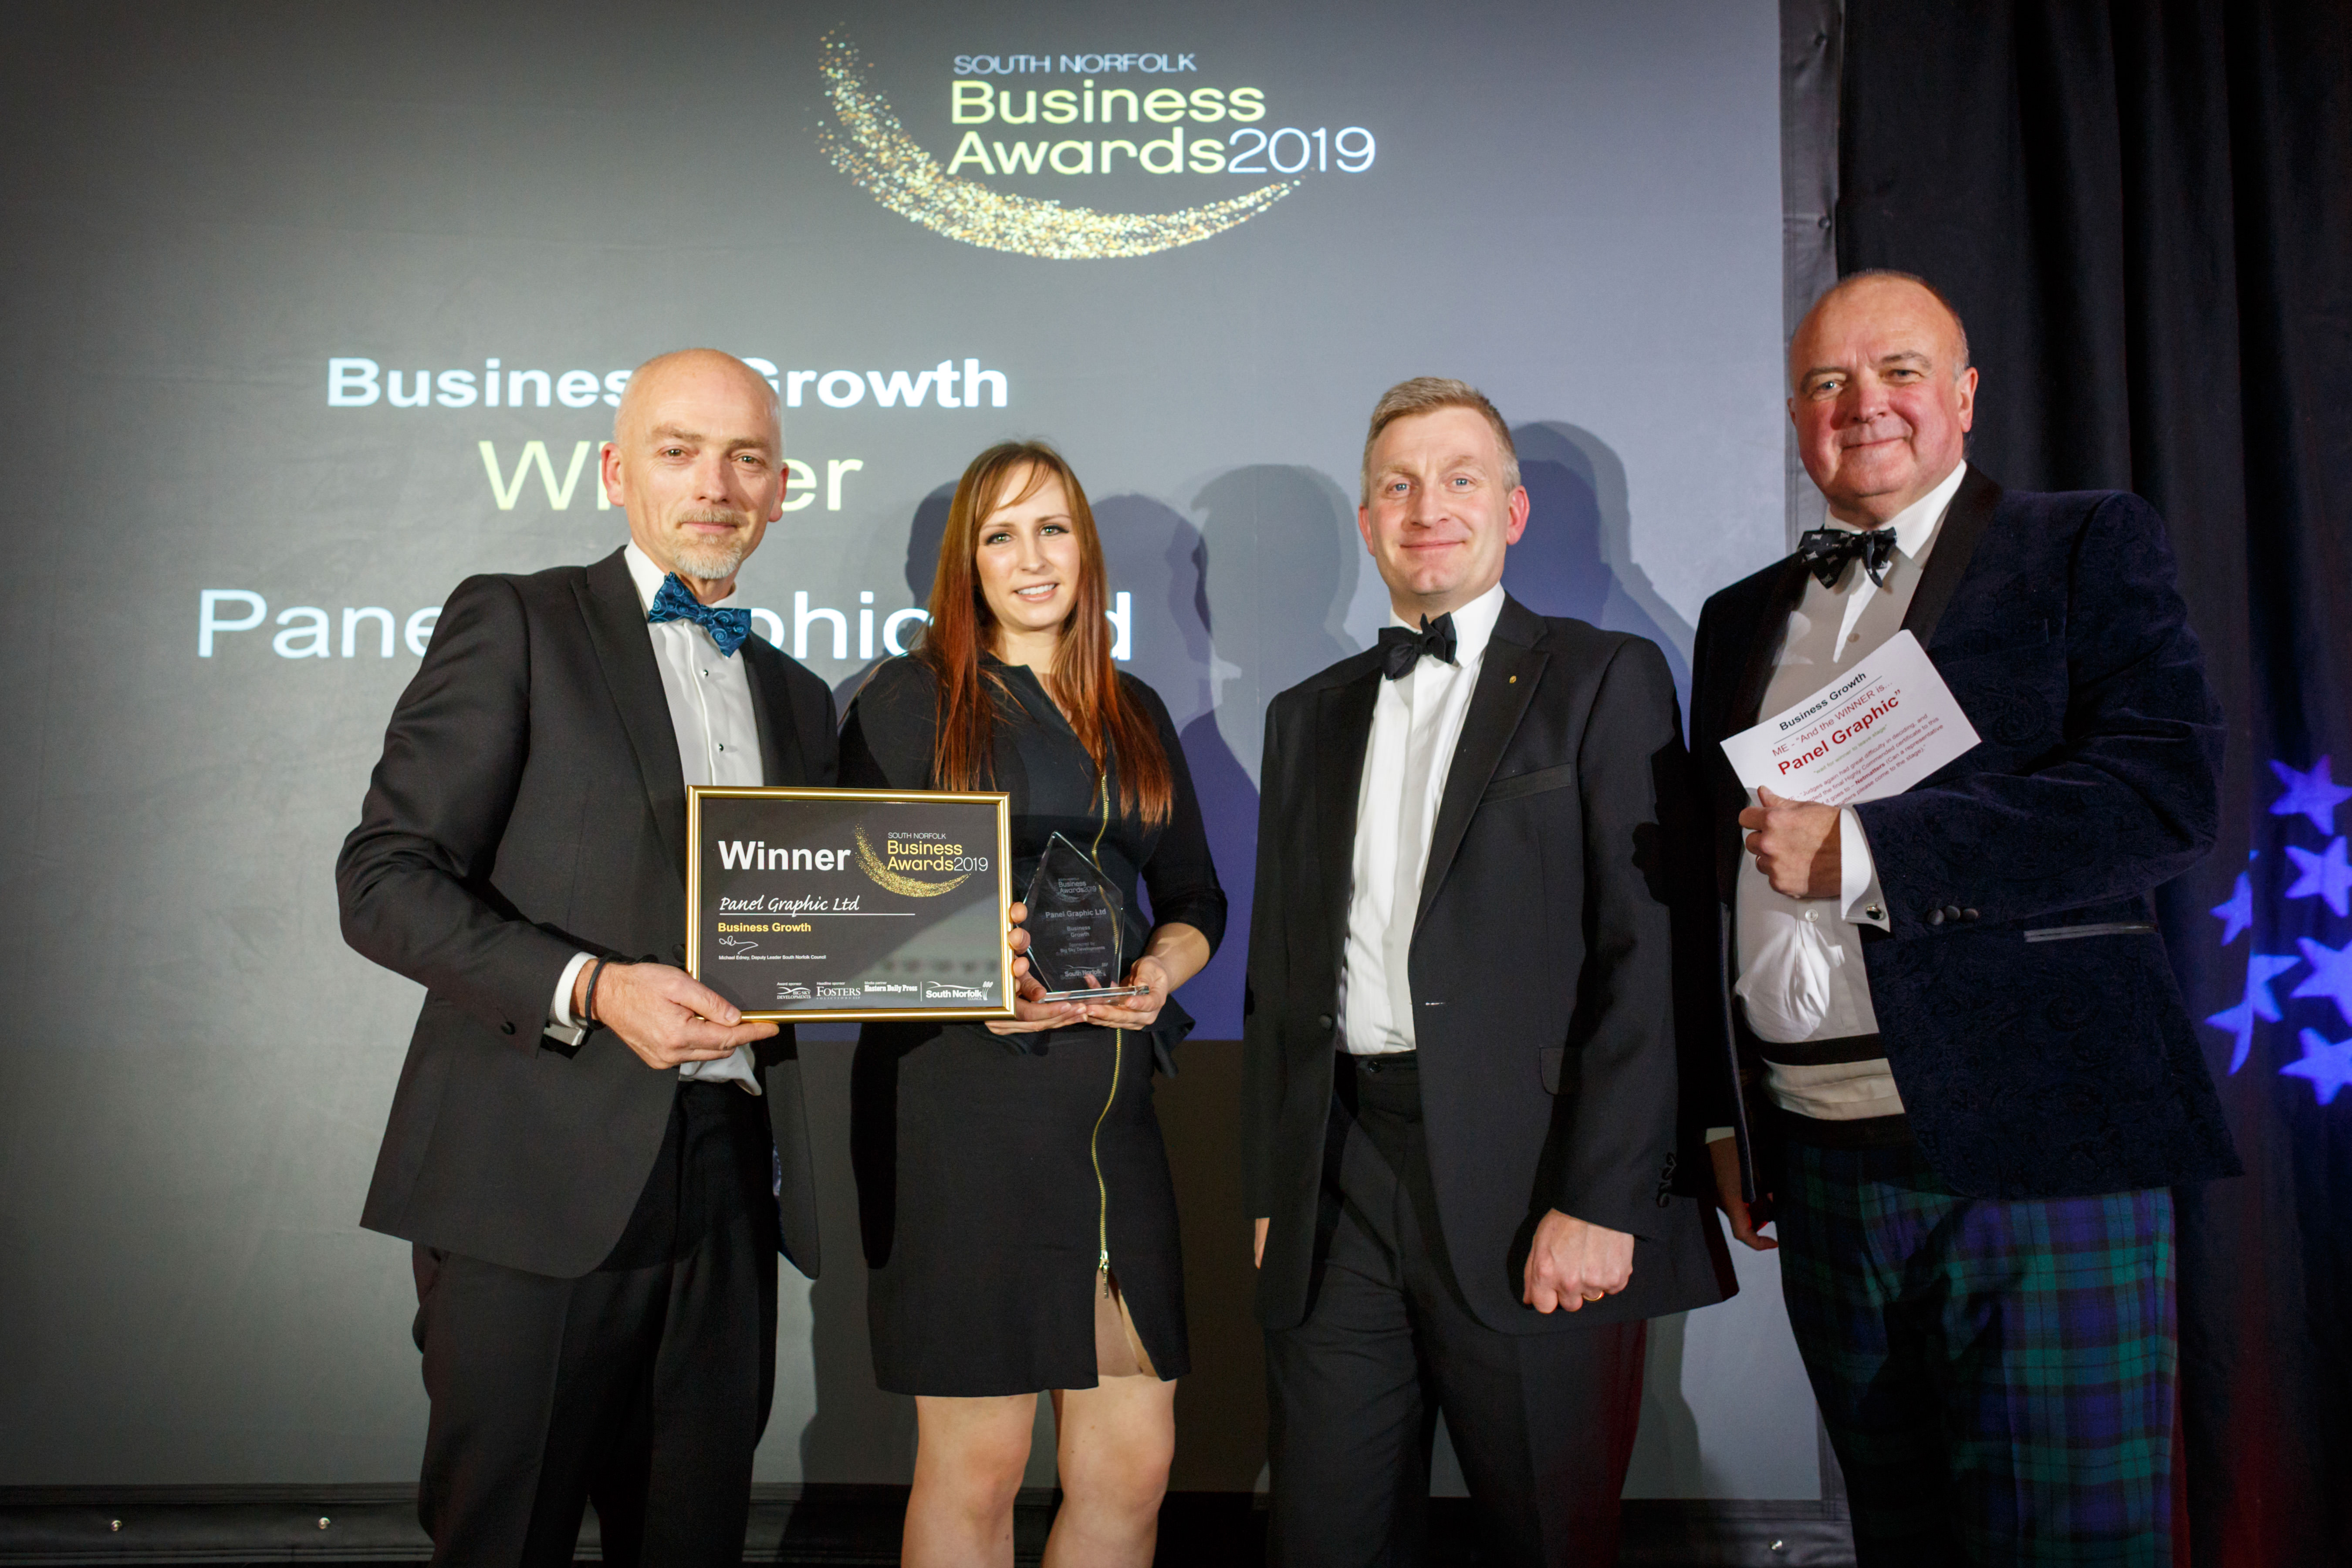 South Norfolk Business Awards 2019